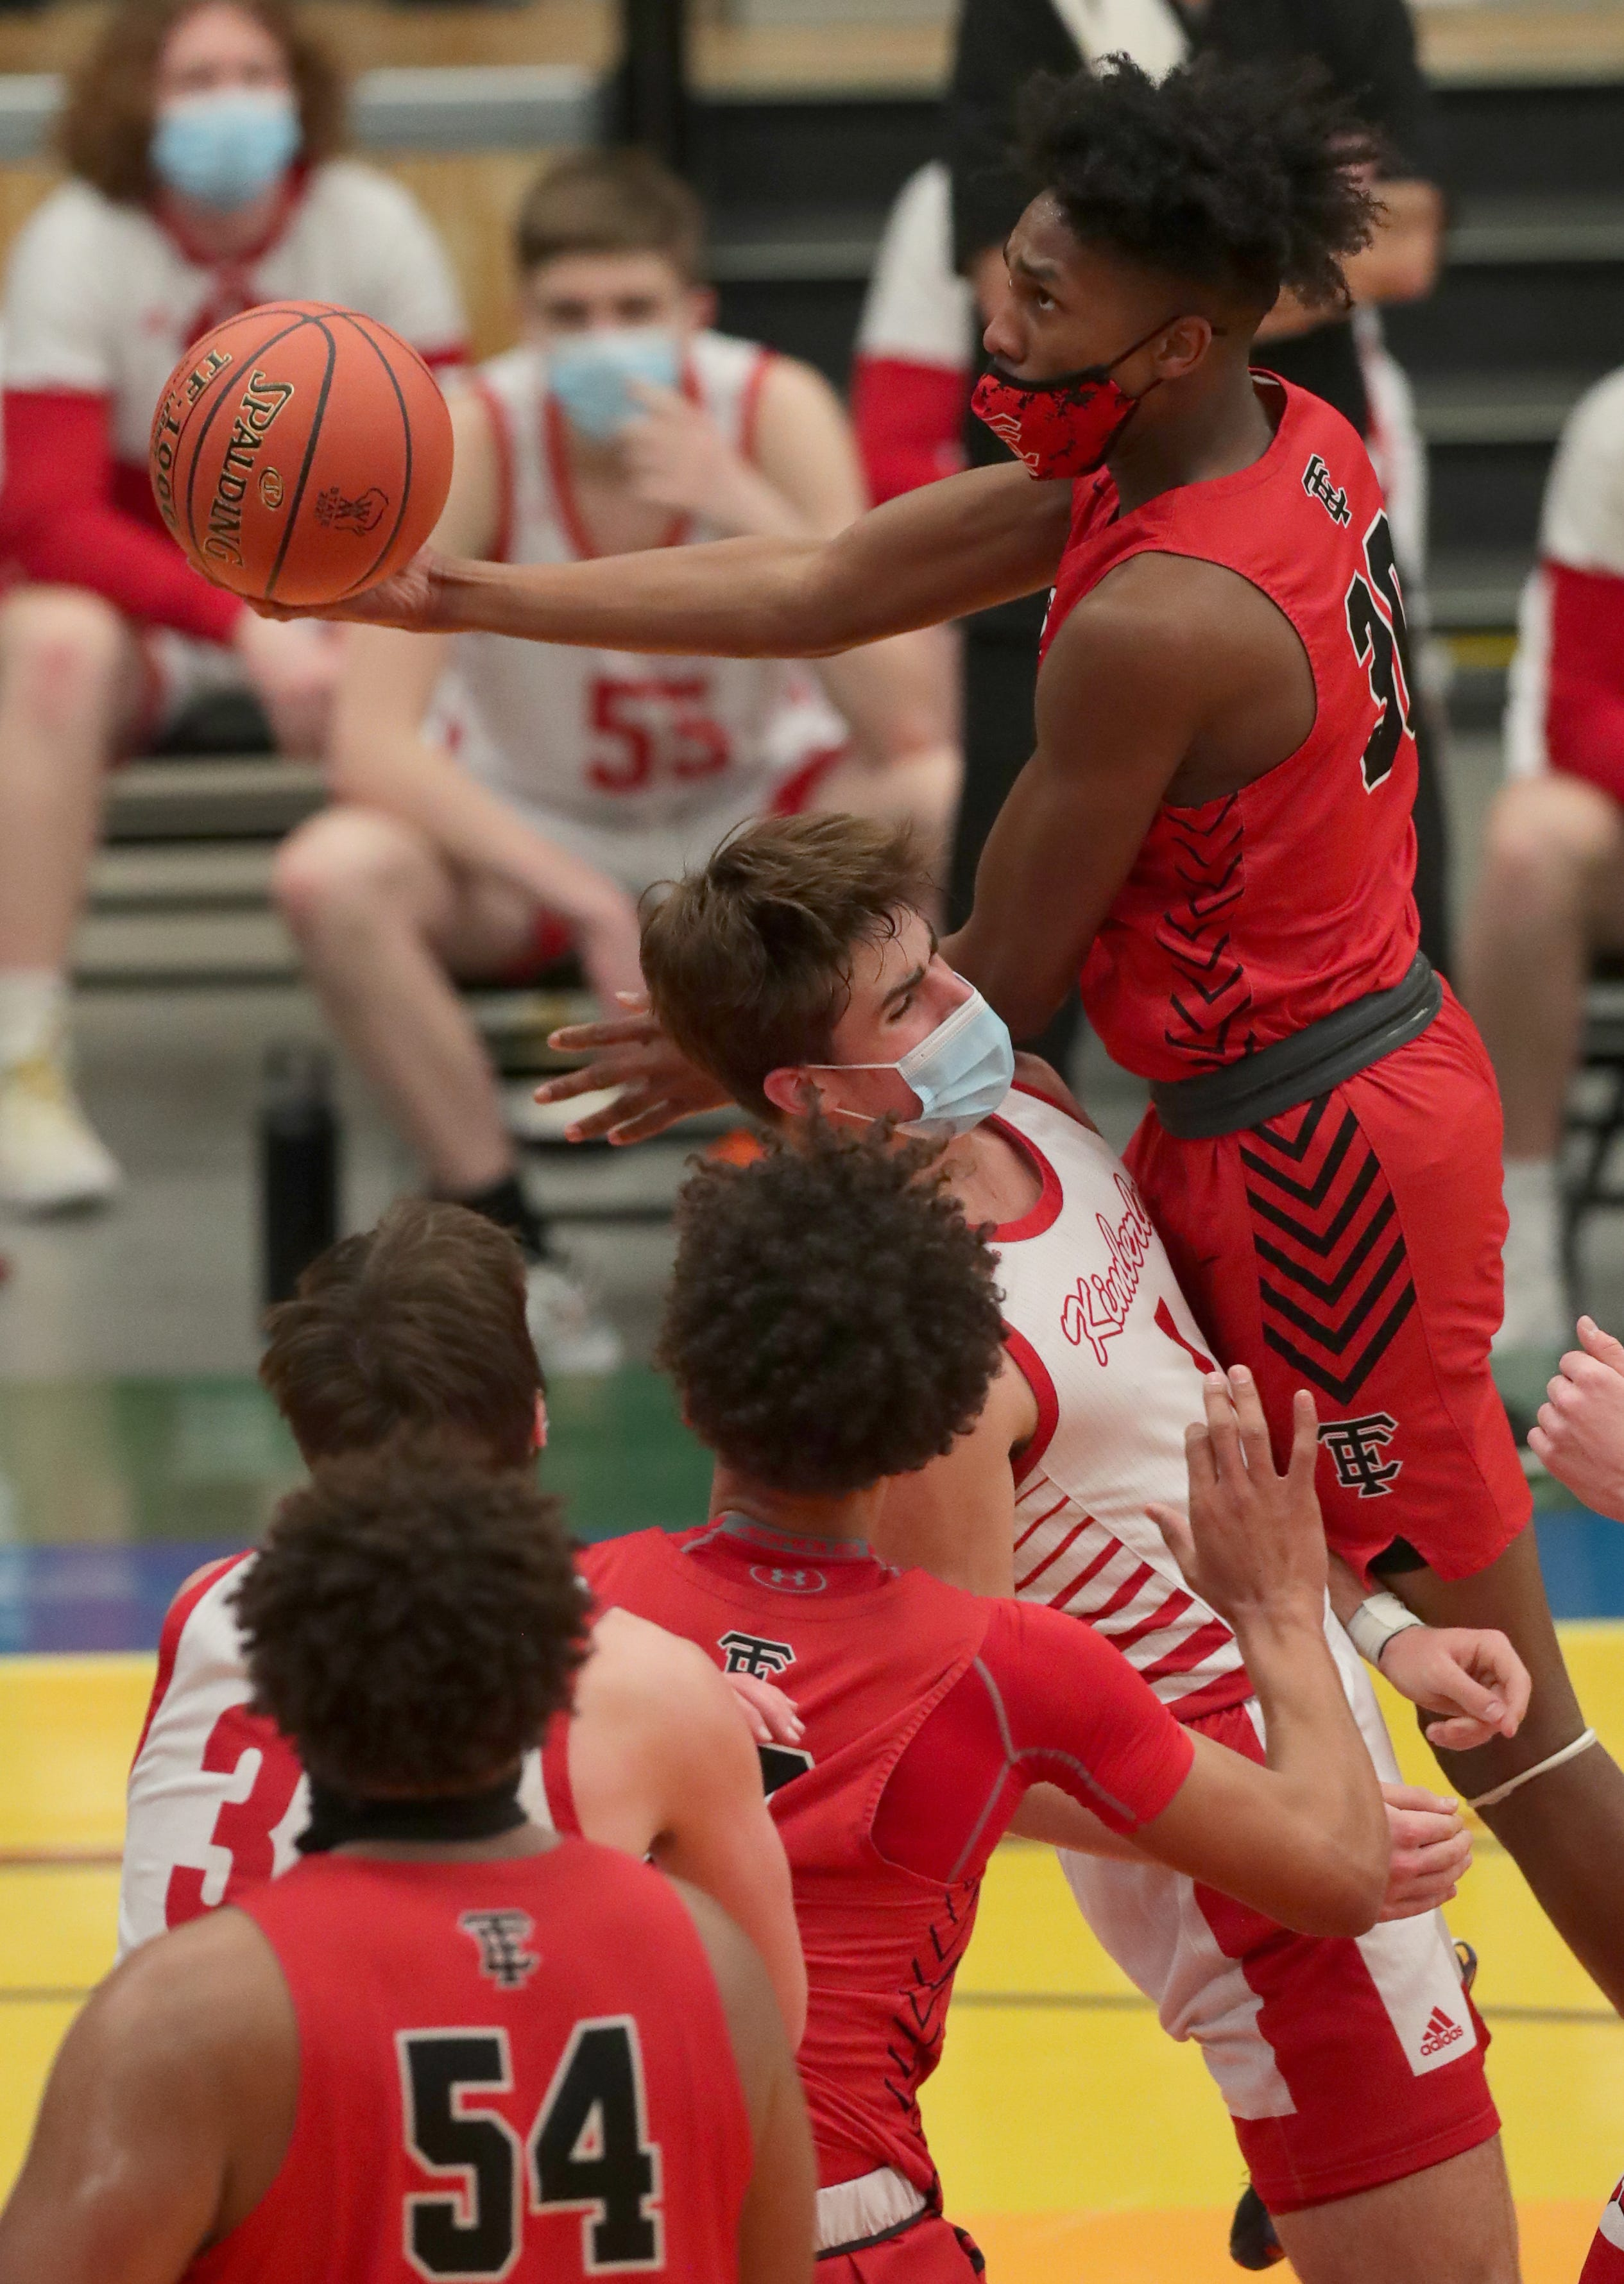 Watch how Wauwatosa East won the Division 1 state boys basketball title